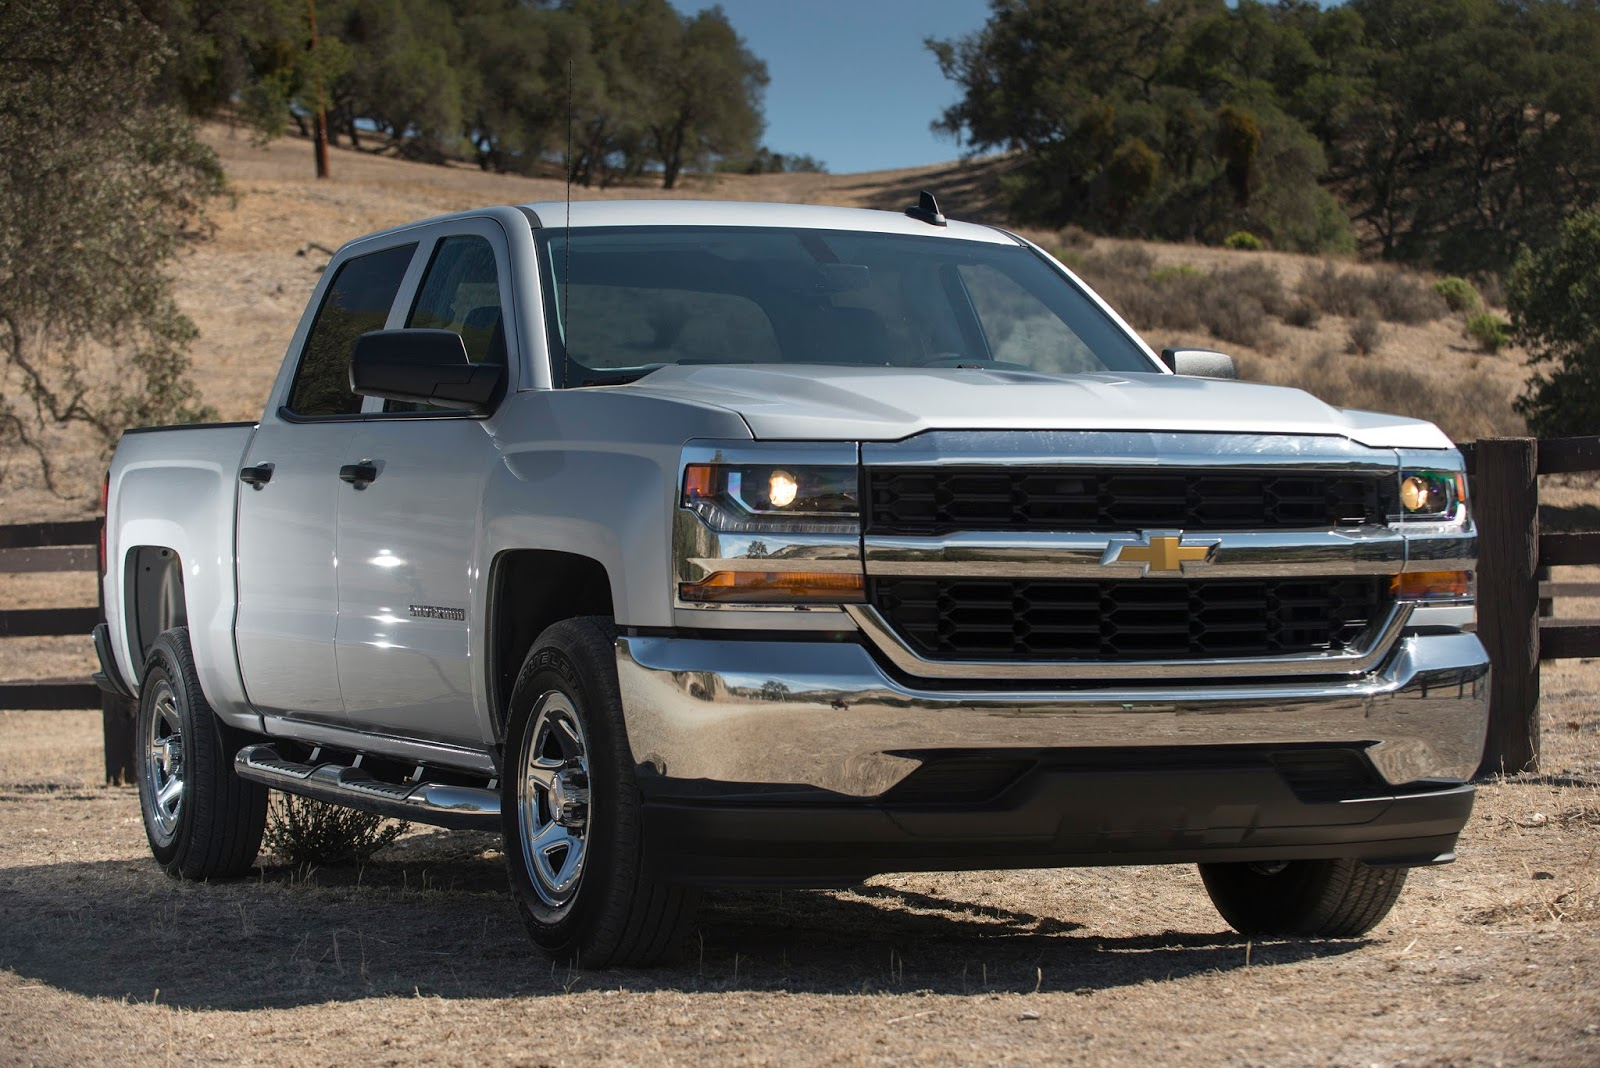 2016 Gm Trailer Brake Controller Best 2018 Chevy Wiring Image Is Loading 15 17 Colorado Canyon 19330662